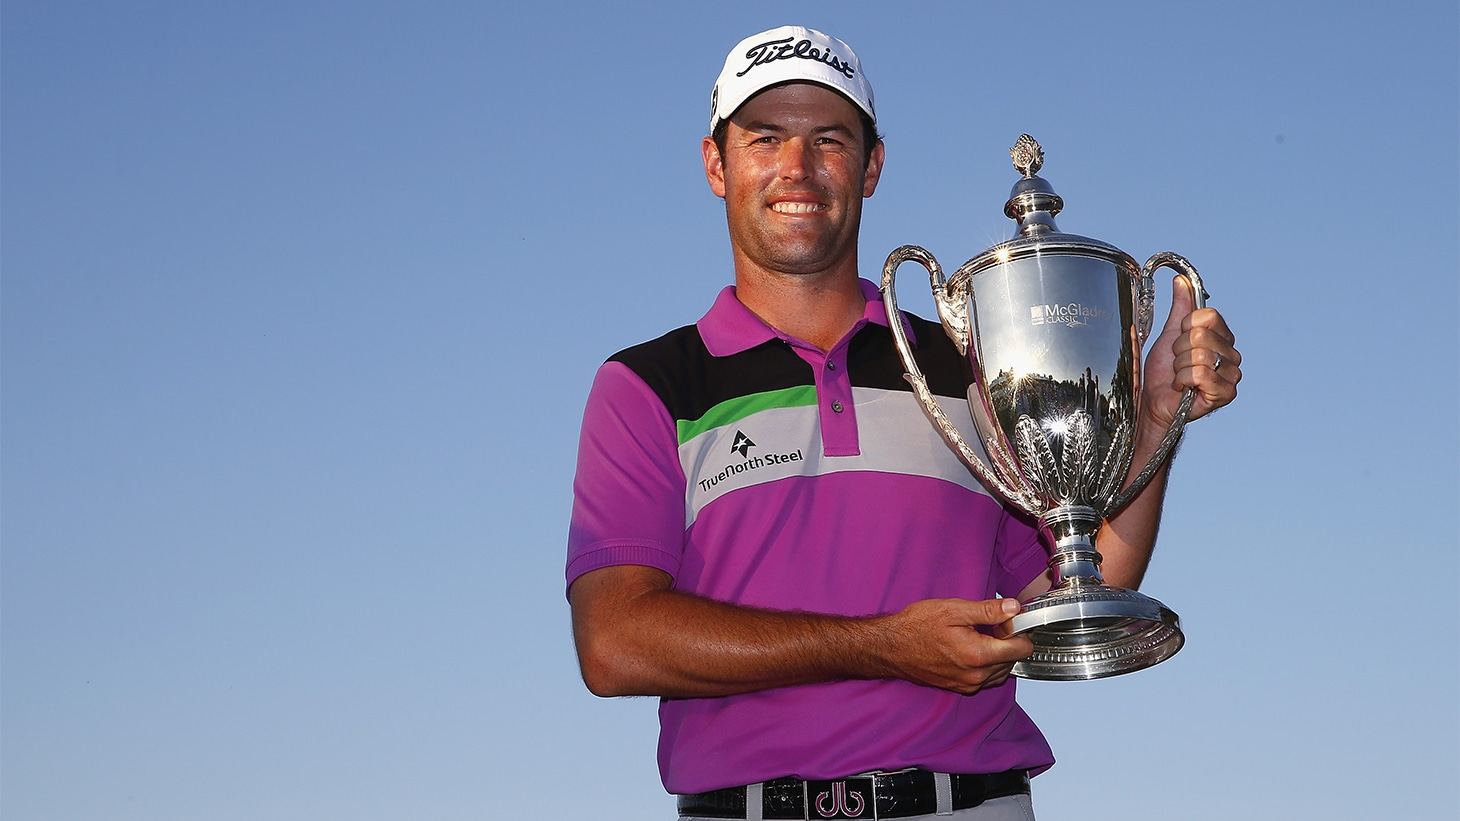 Robert Streb poses with the trophy after winning...